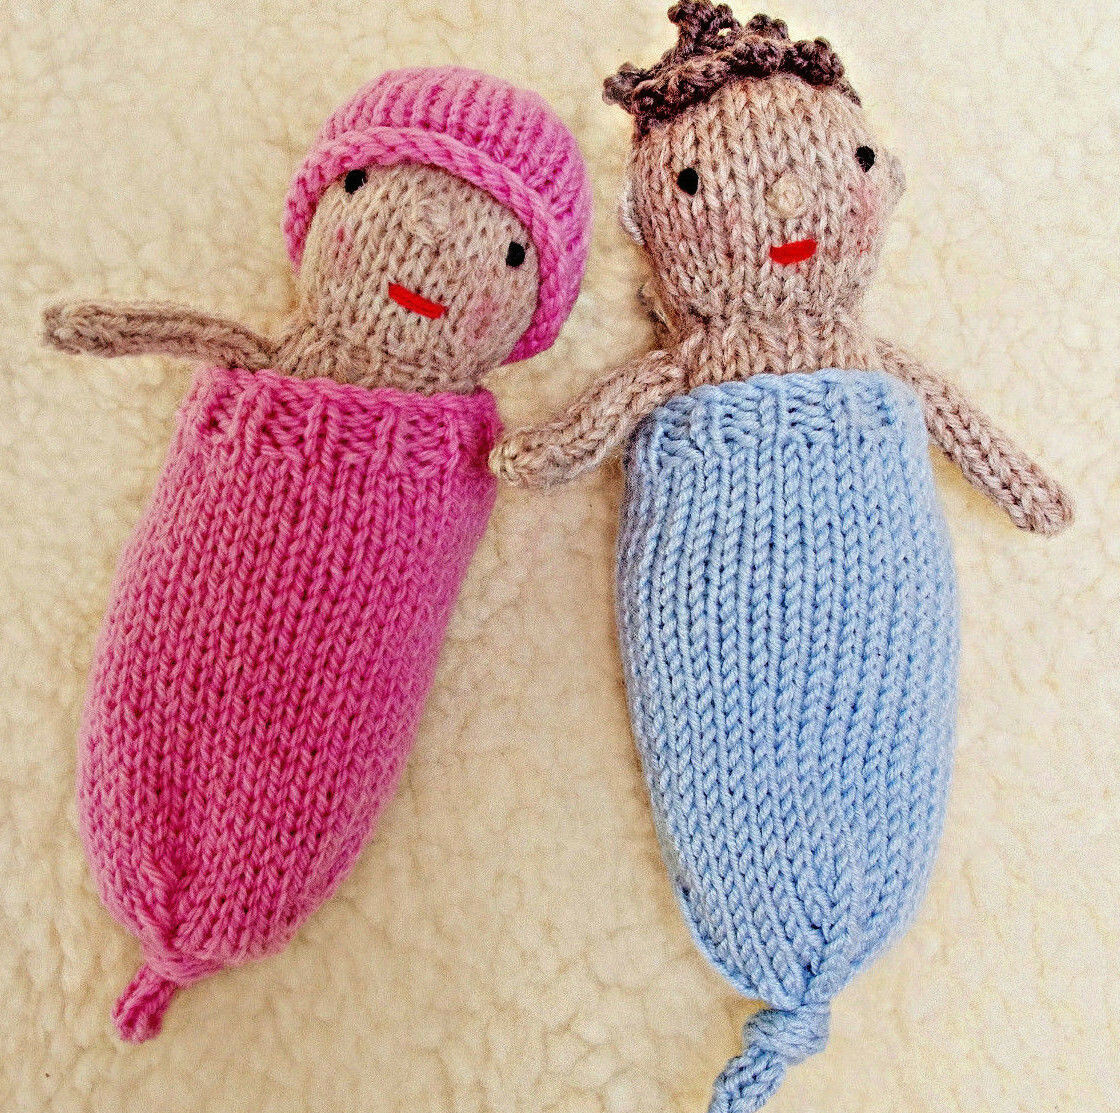 KNITTING PATTERN BABY Doll Toy Knitted Rabbit Knit Gift Knit ...